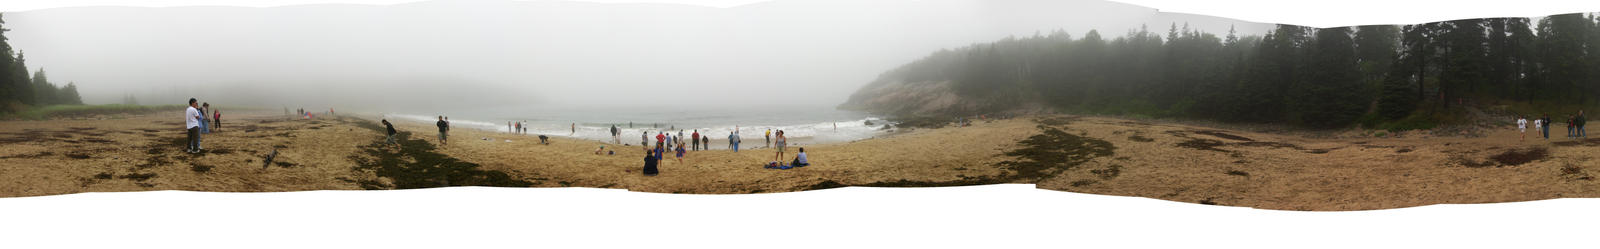 Giant Beach Panorama by stpmsngwthmyhed